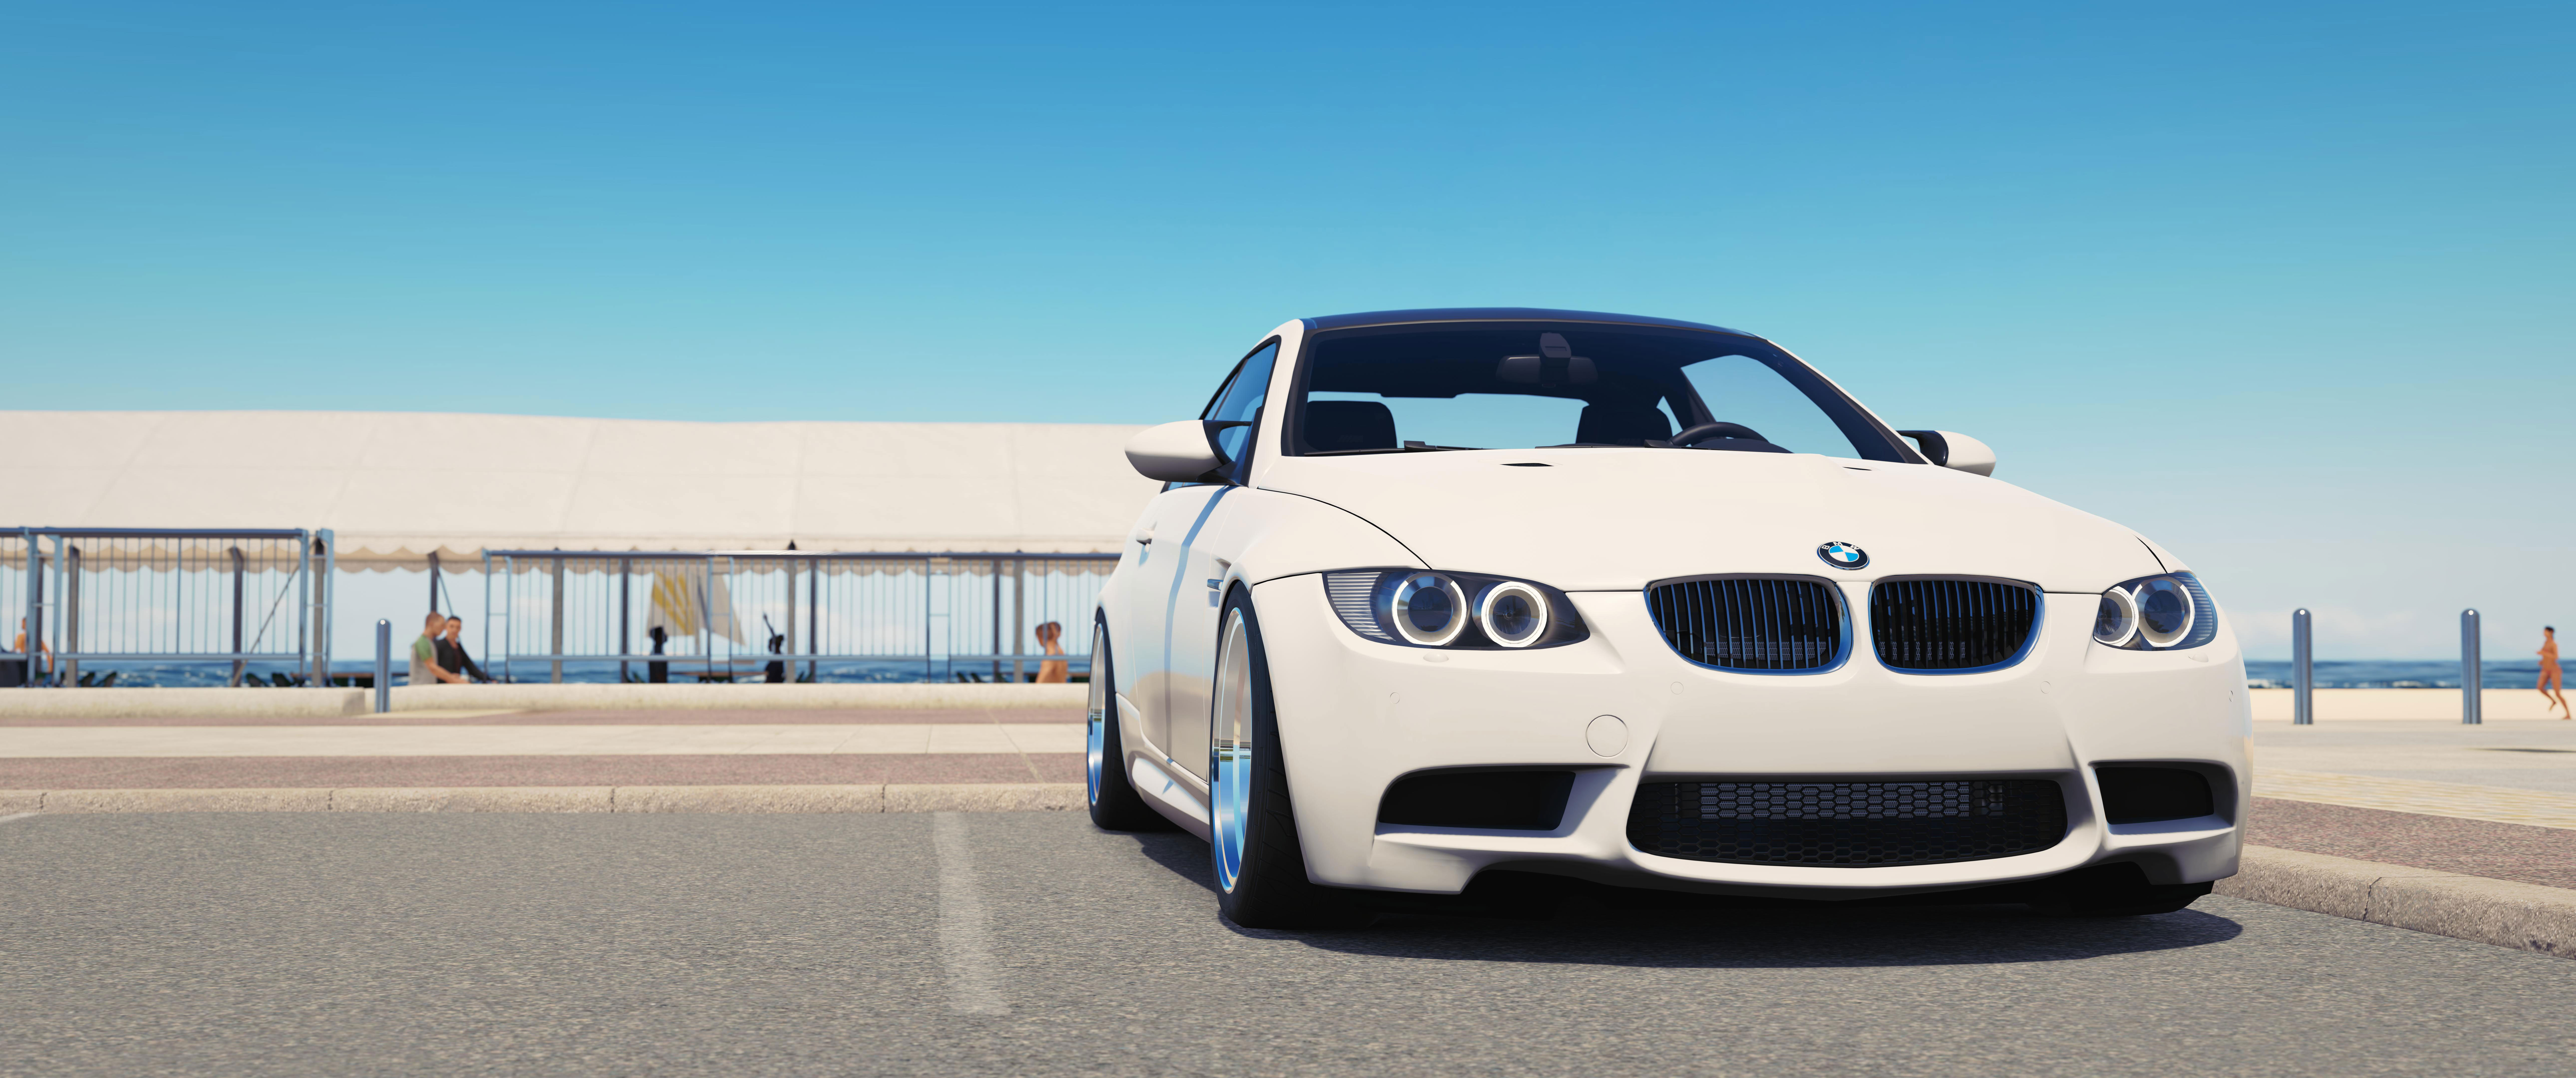 ultra hd wallpapers 8k cars,land vehicle,vehicle,car,bmw,personal luxury car